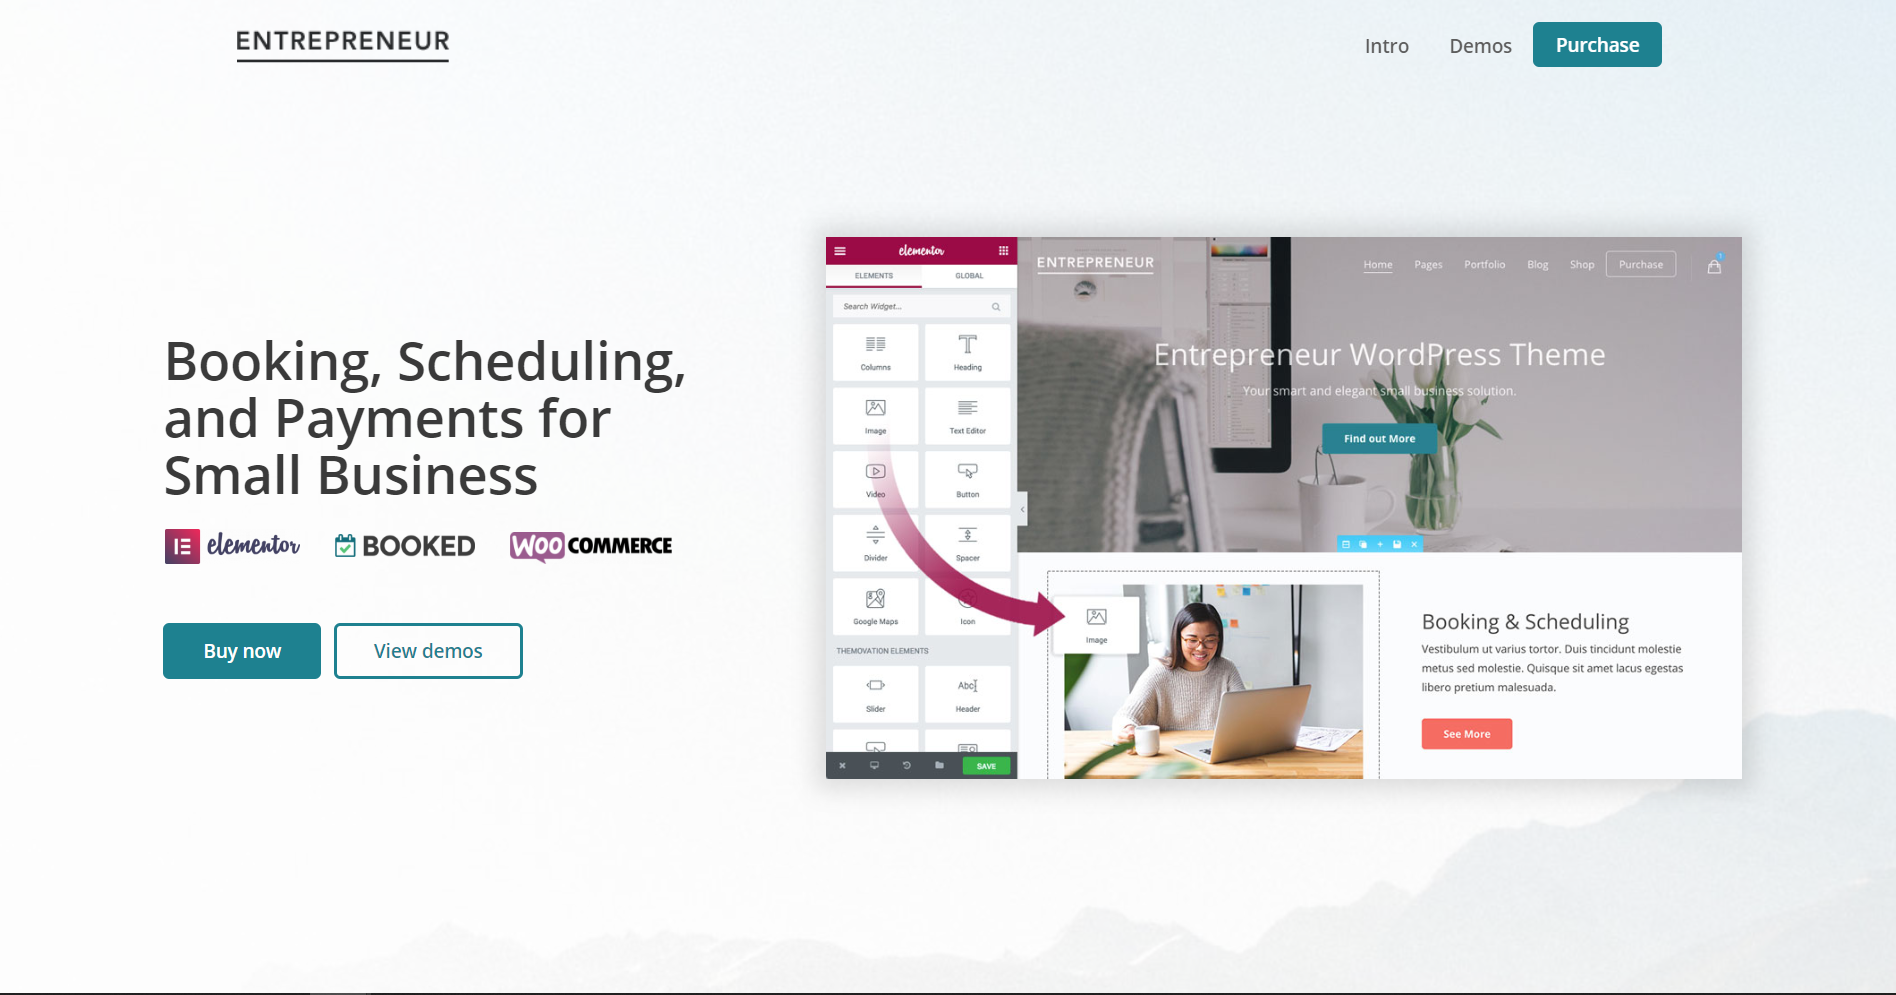 40. Entrepreneur - Booking for Small Businesses